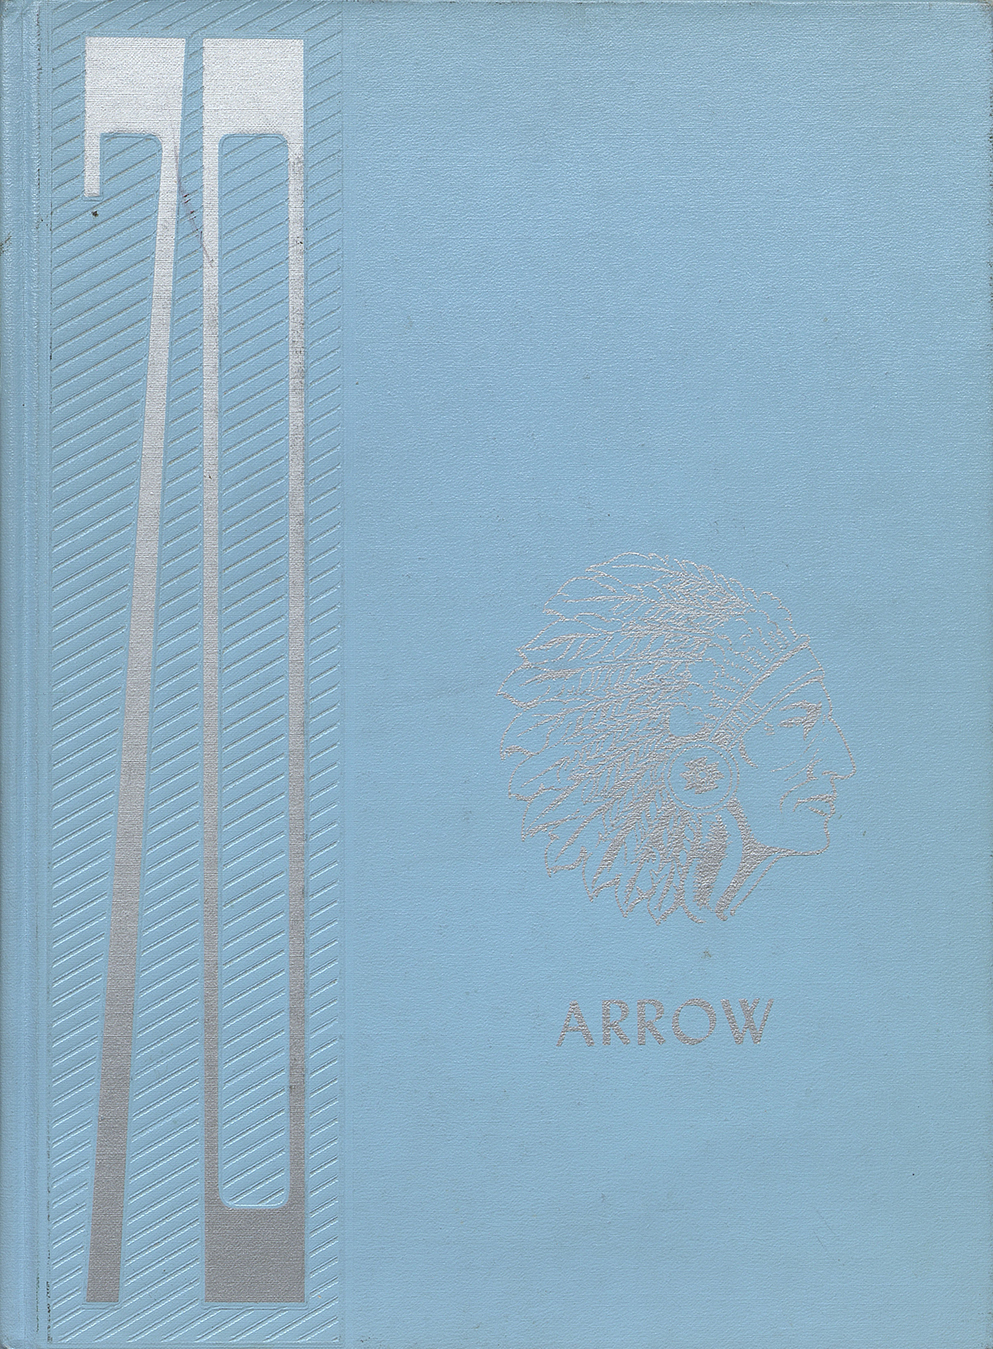 The Arrow 1970